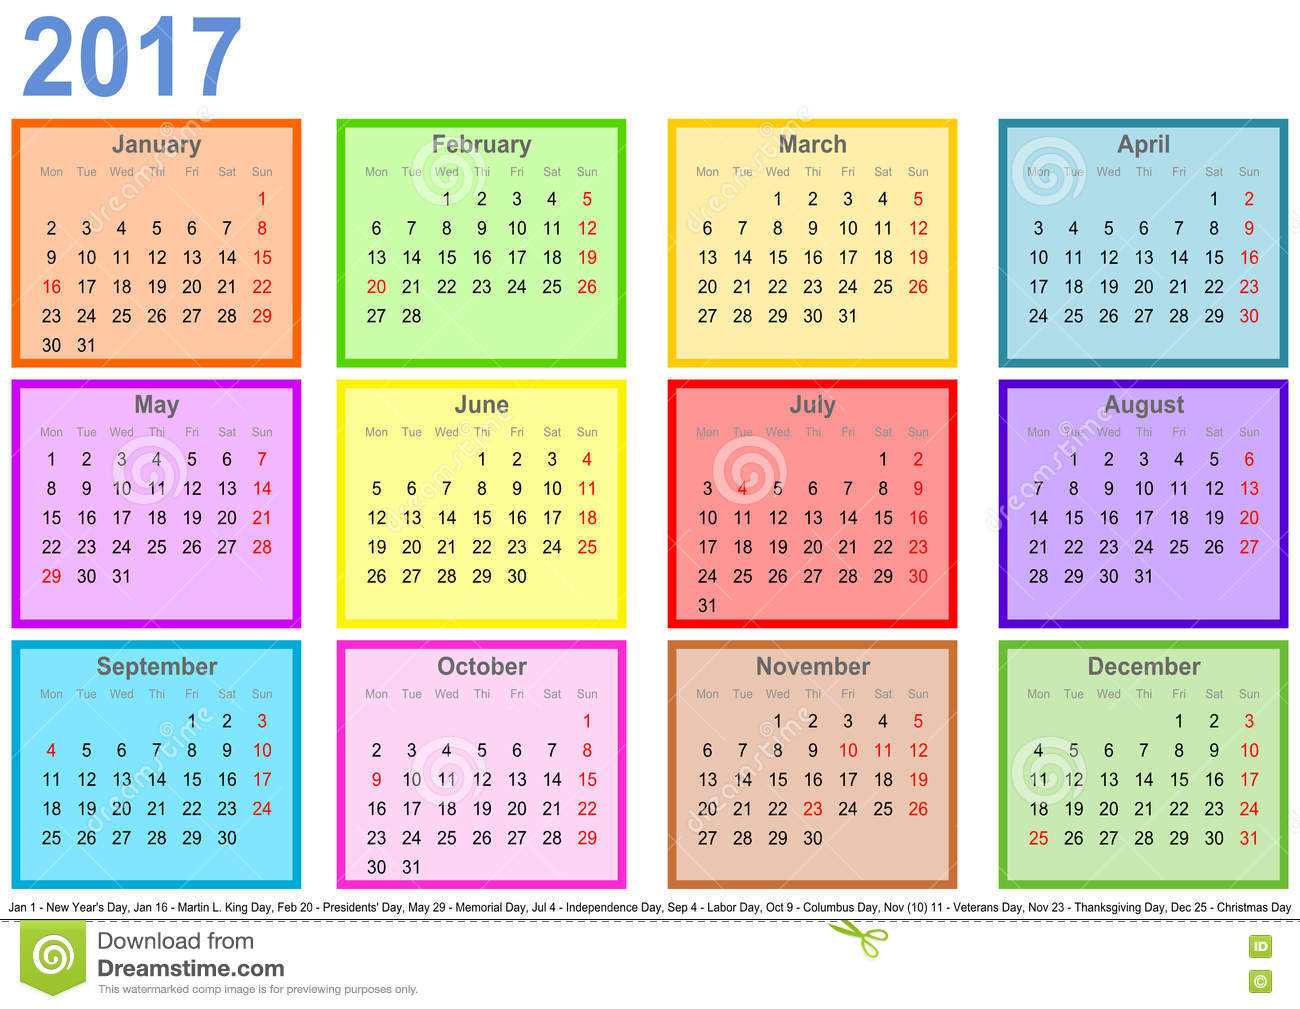 Calendar 2017 With Colorful Fields Per Month And Holidays